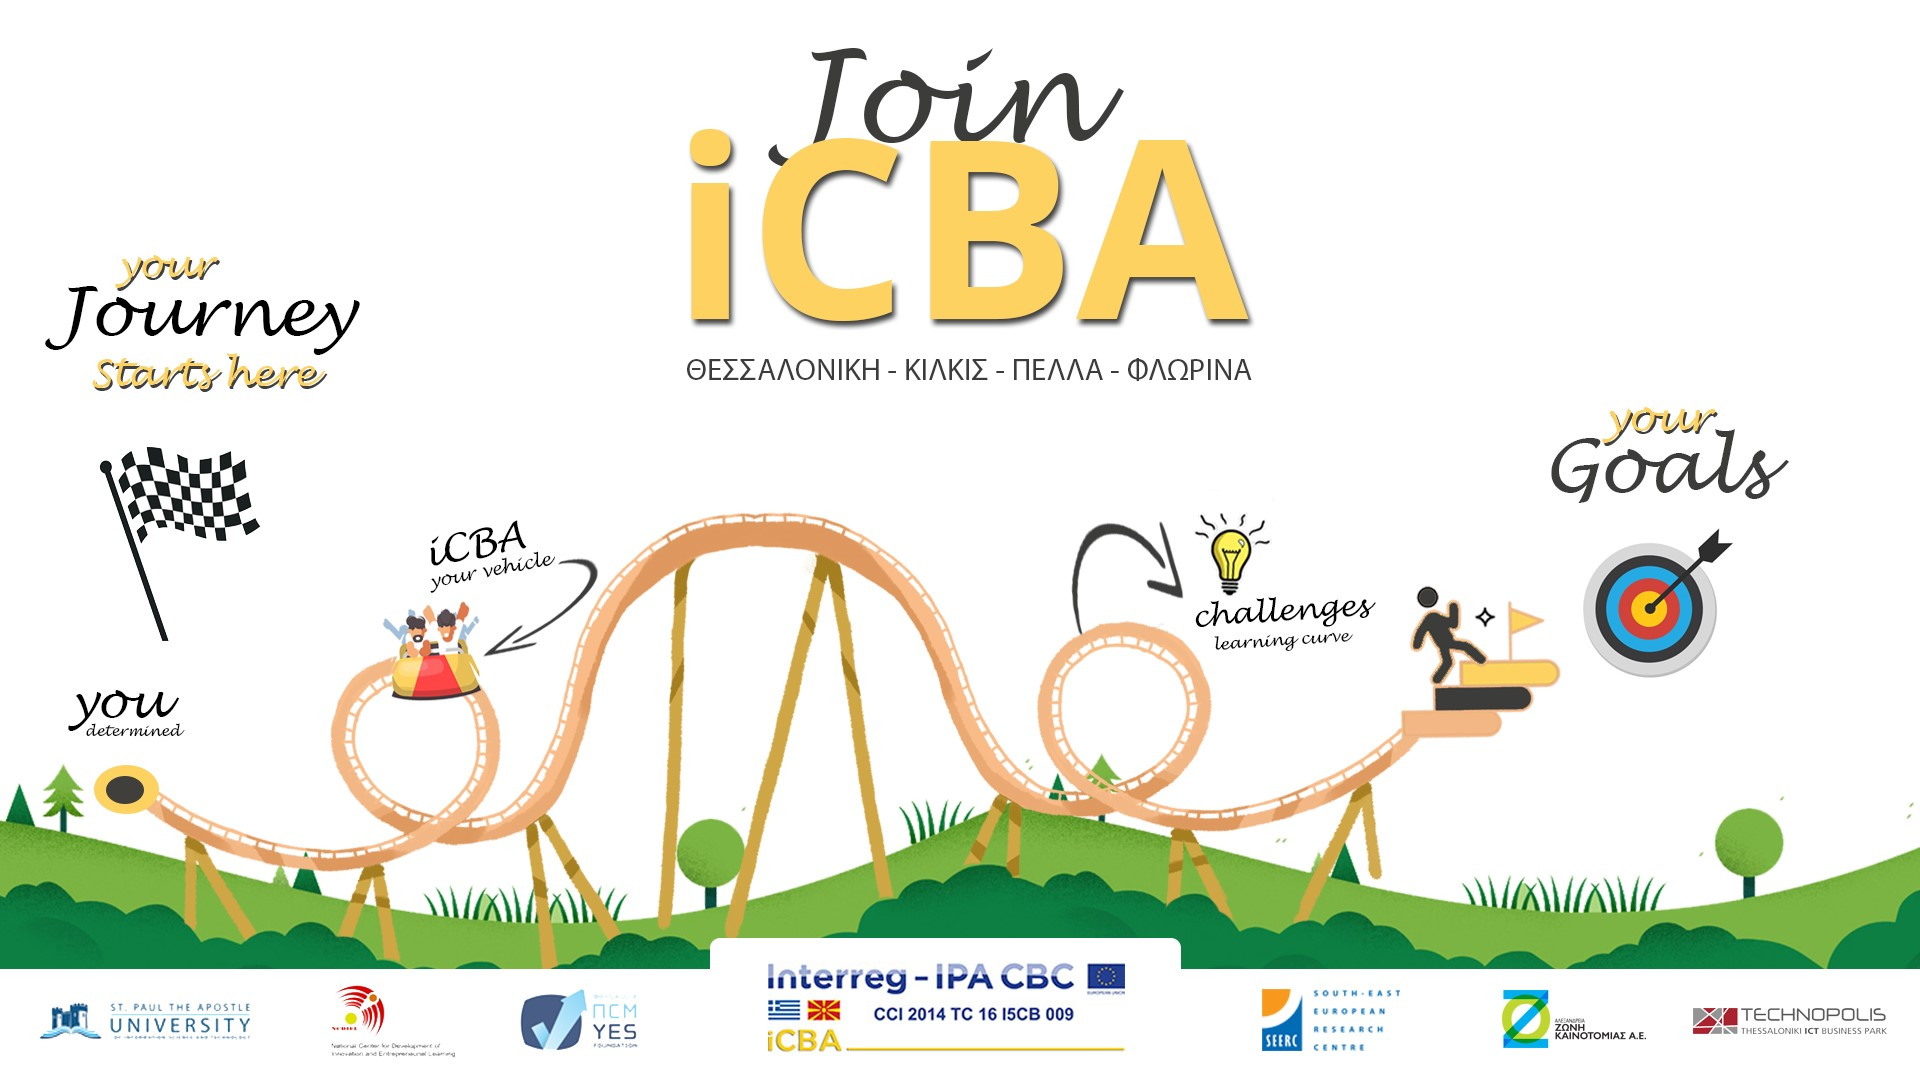 join ICBA